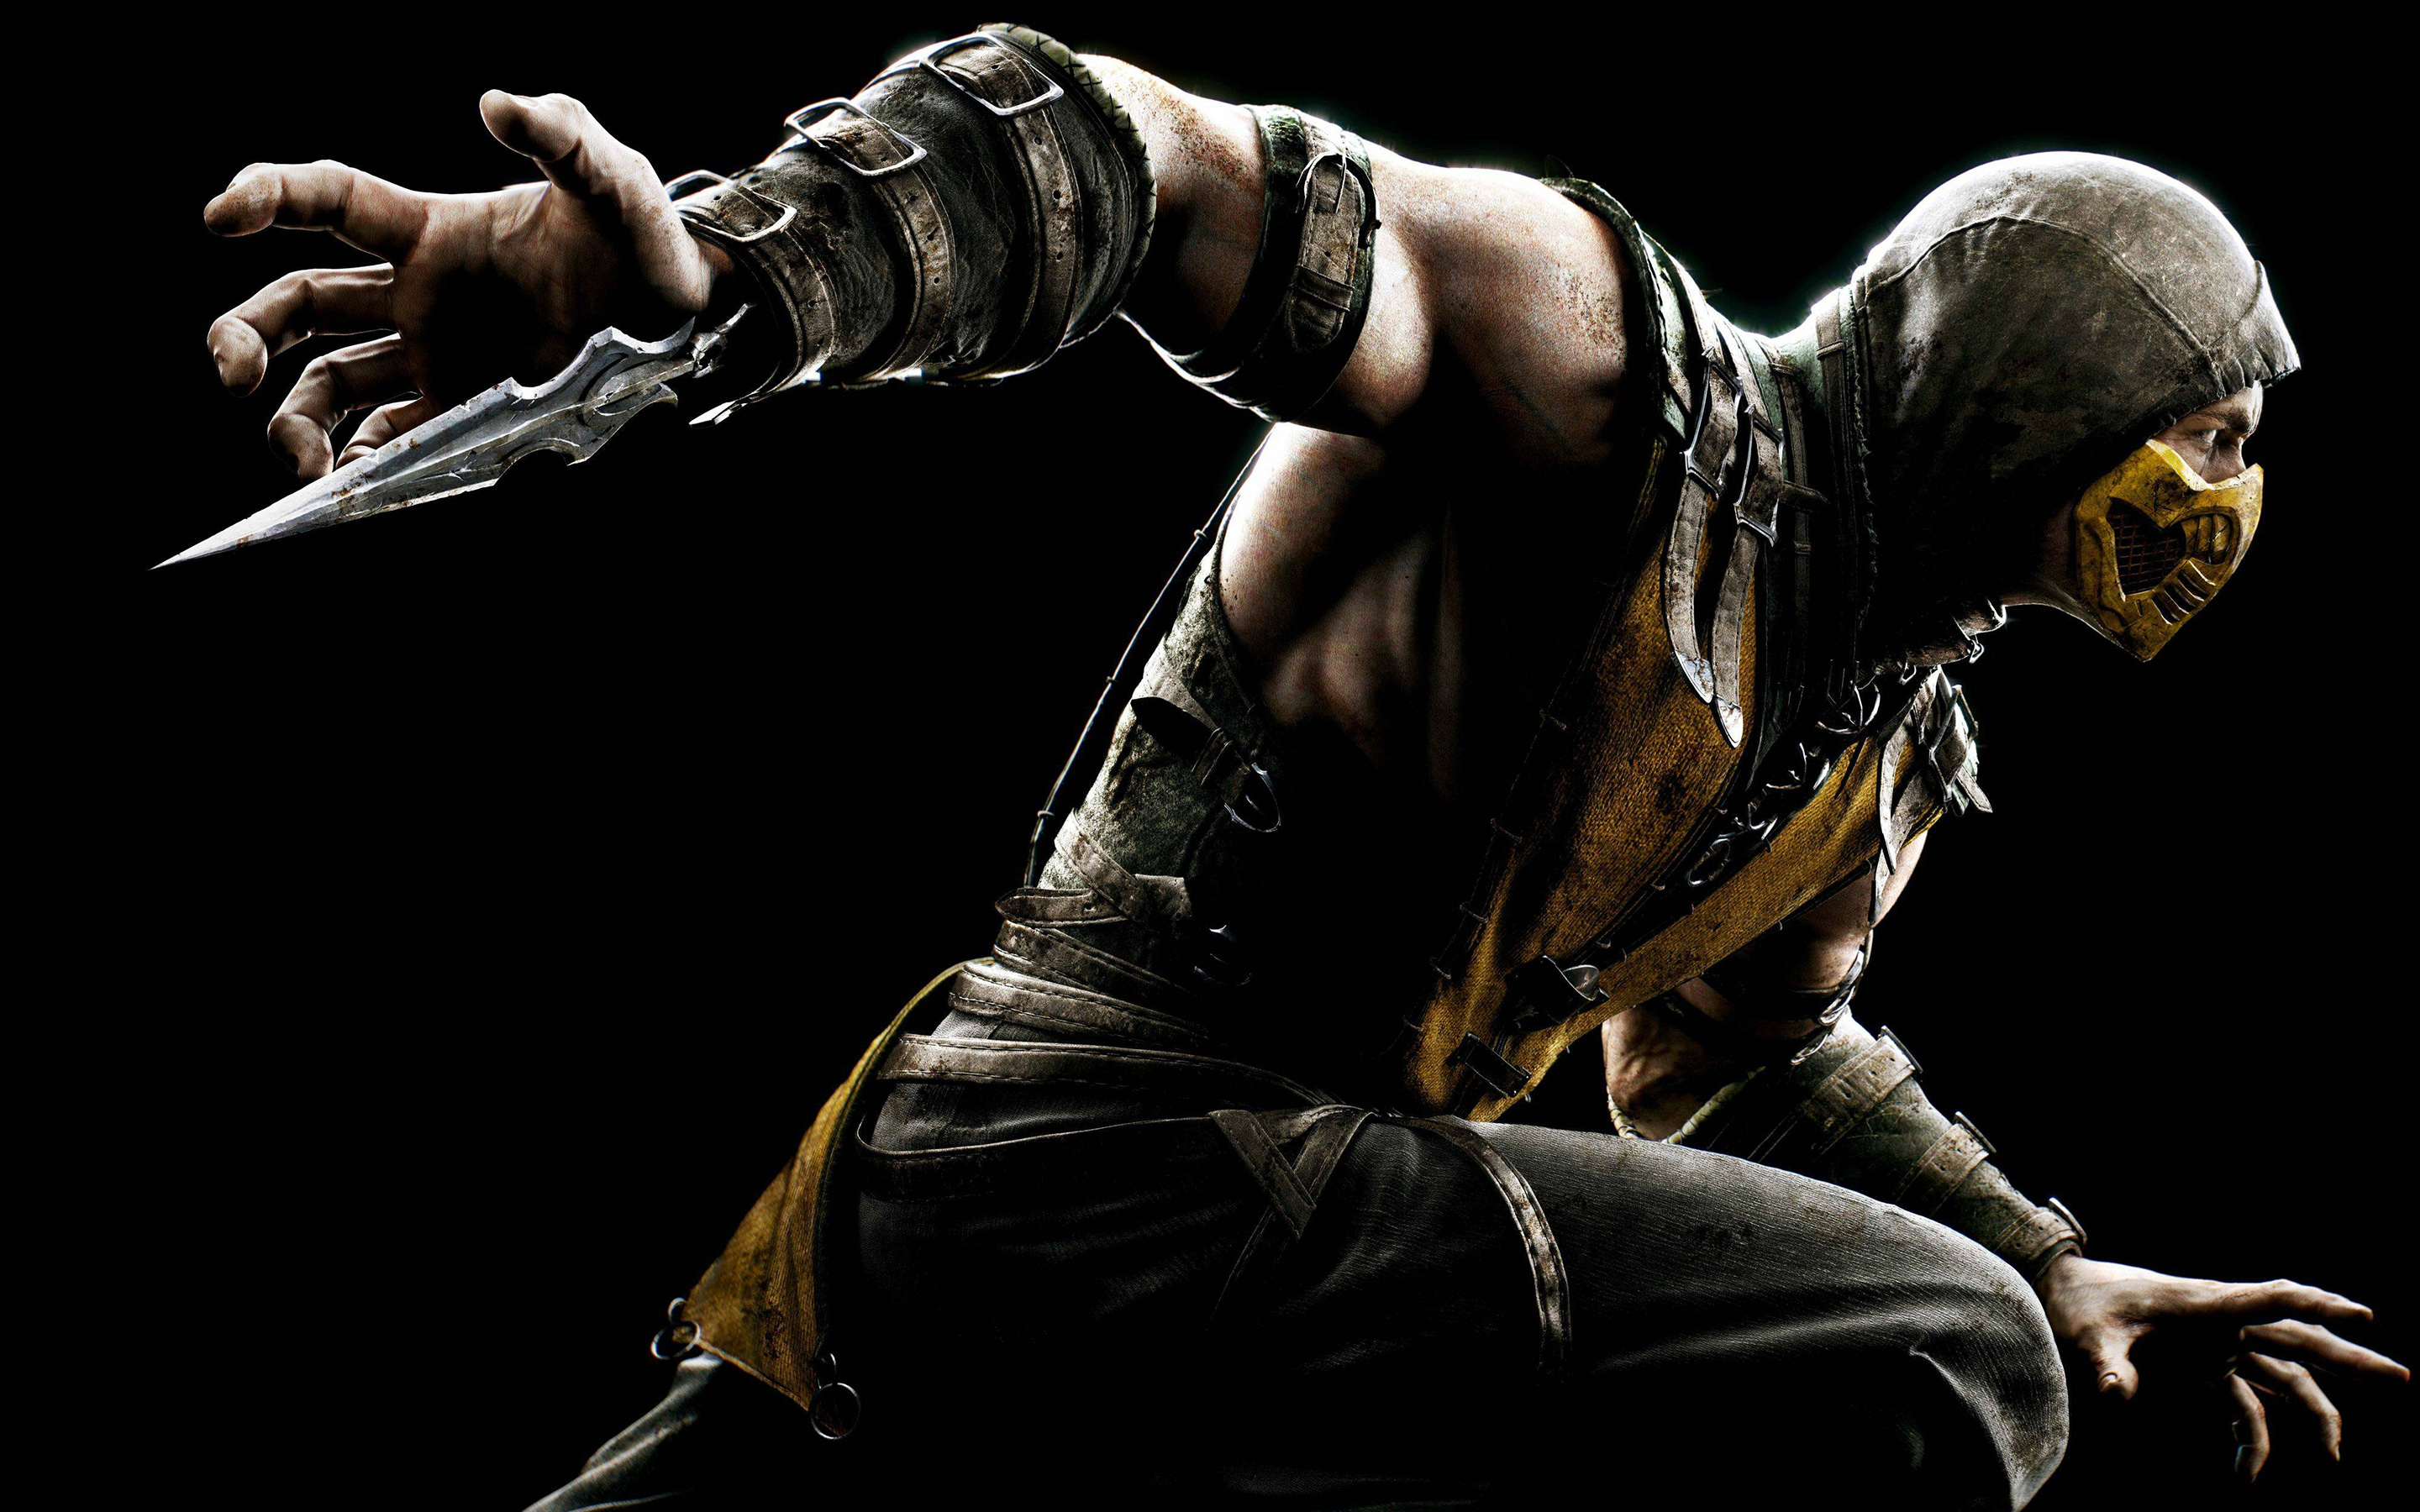 Download Mortal Kombat X Scorpio HD Wallpaper 6667 Full Size 2880x1800